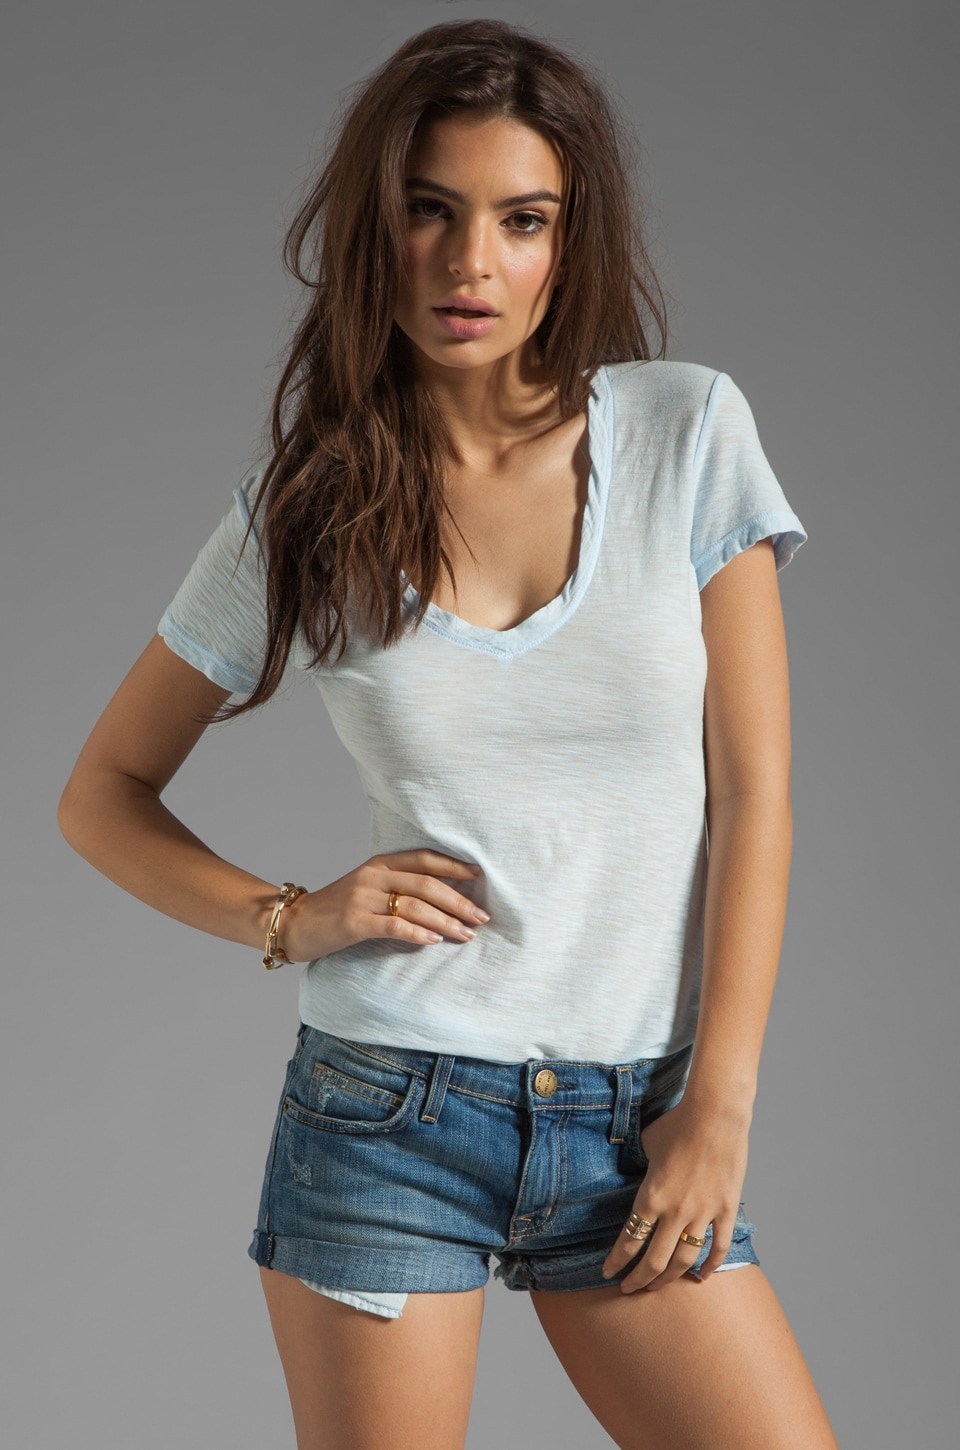 James Perse Casual Tee in Powder Blue